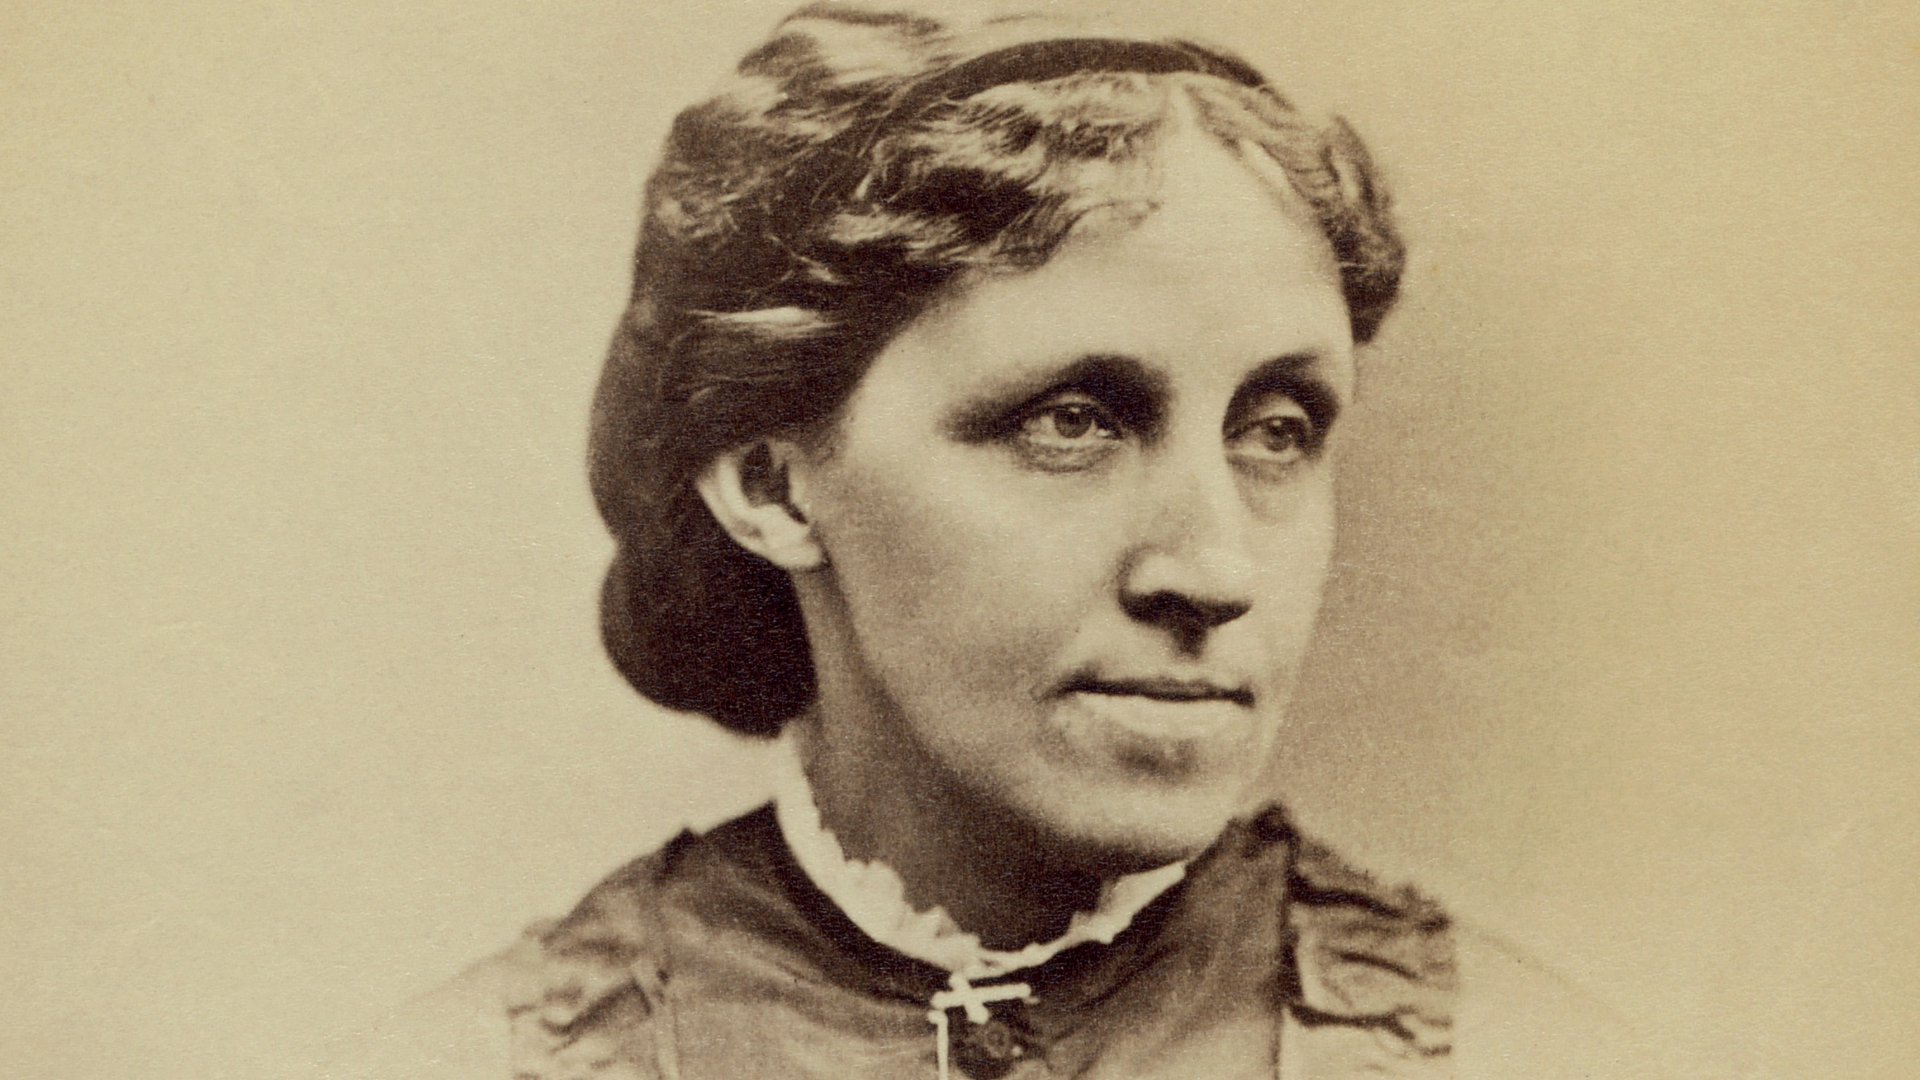 Louisa May Alcott, circa 1870. (Credit: Glasshouse Images/Alamy Stock Photo)